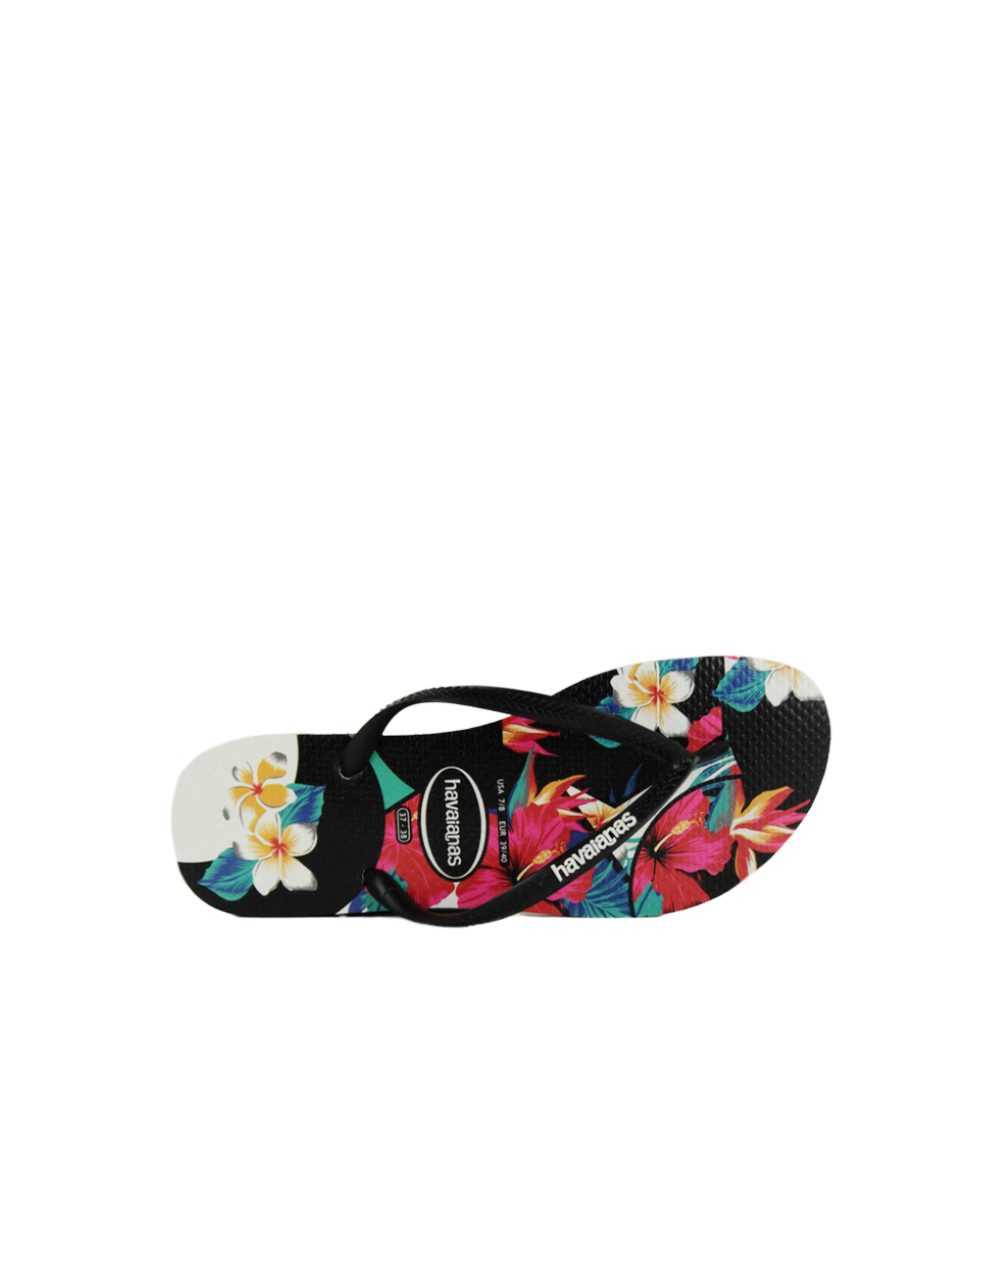 03453adde877 Havaianas Slim Tropical Floral Black (4139406 0090)